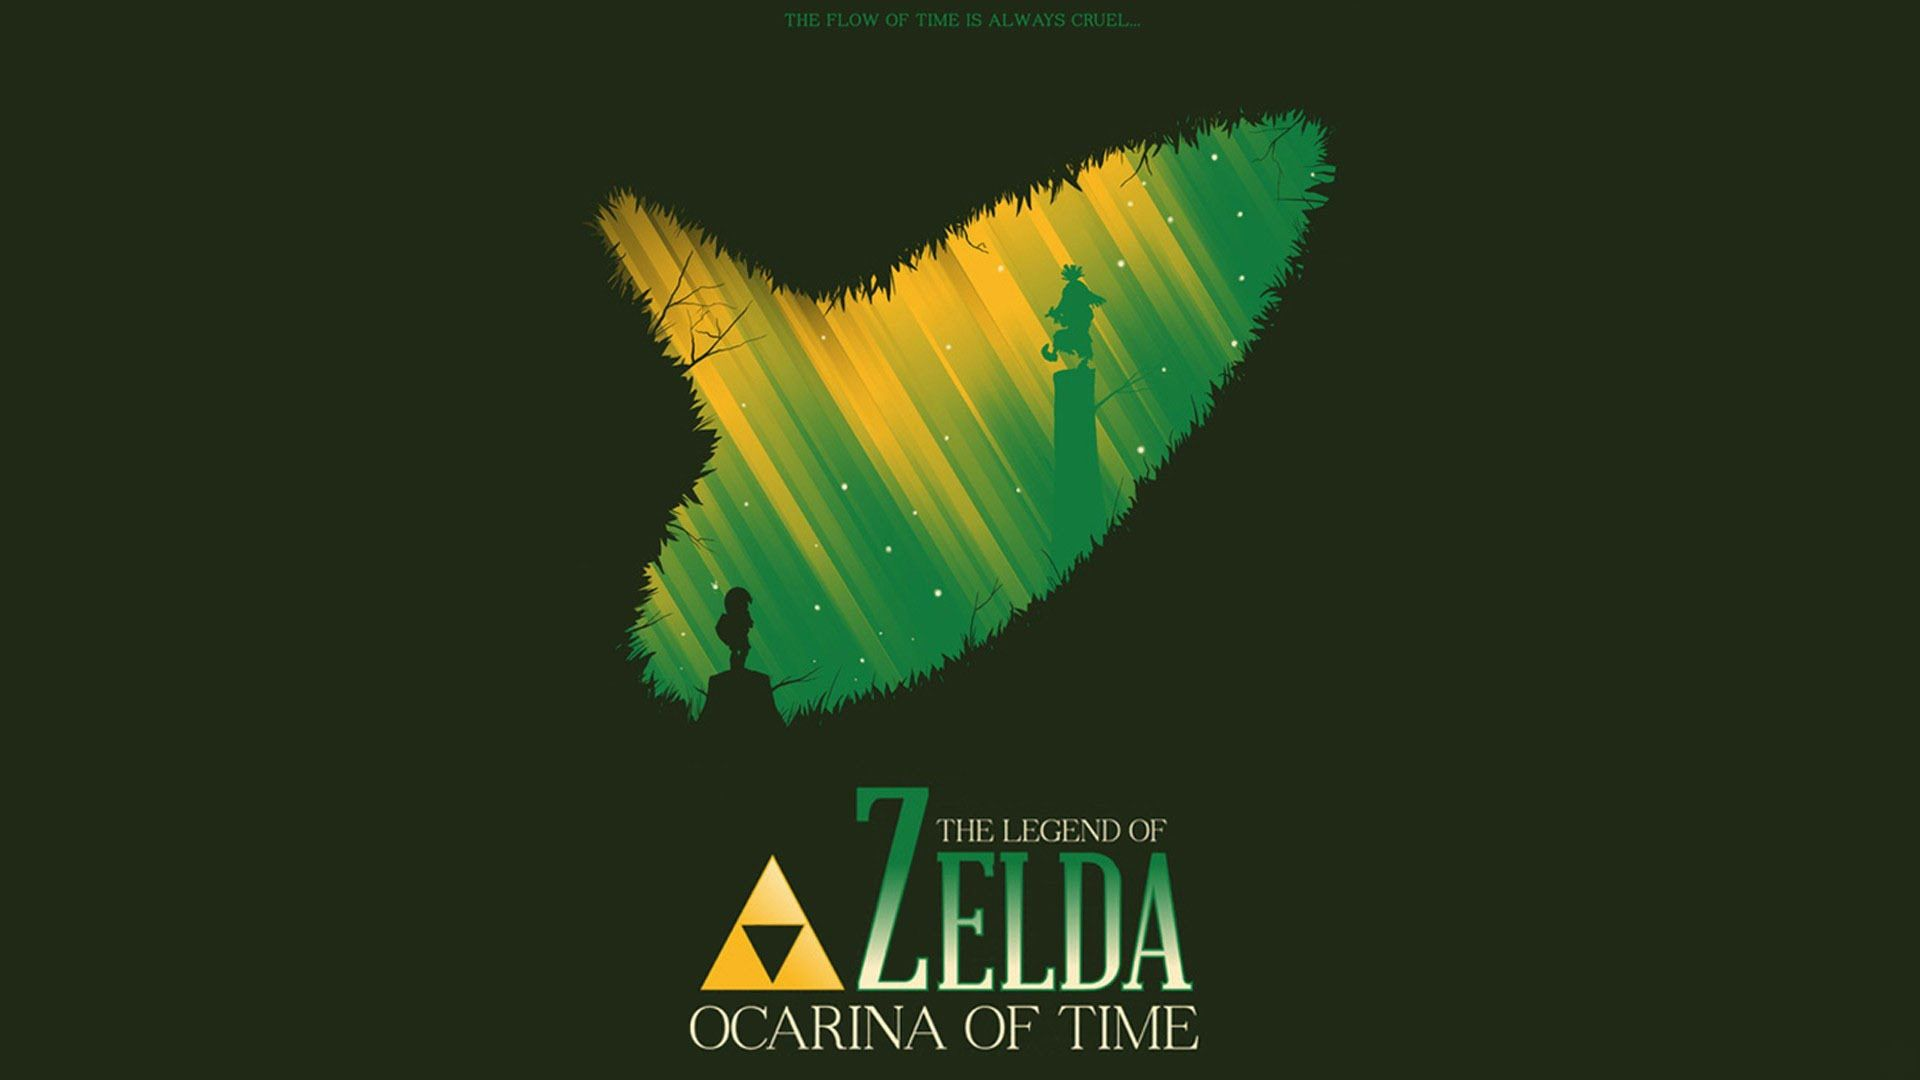 It S Always A Good Day To Chill Out Loz Ocarina Of Time Legend